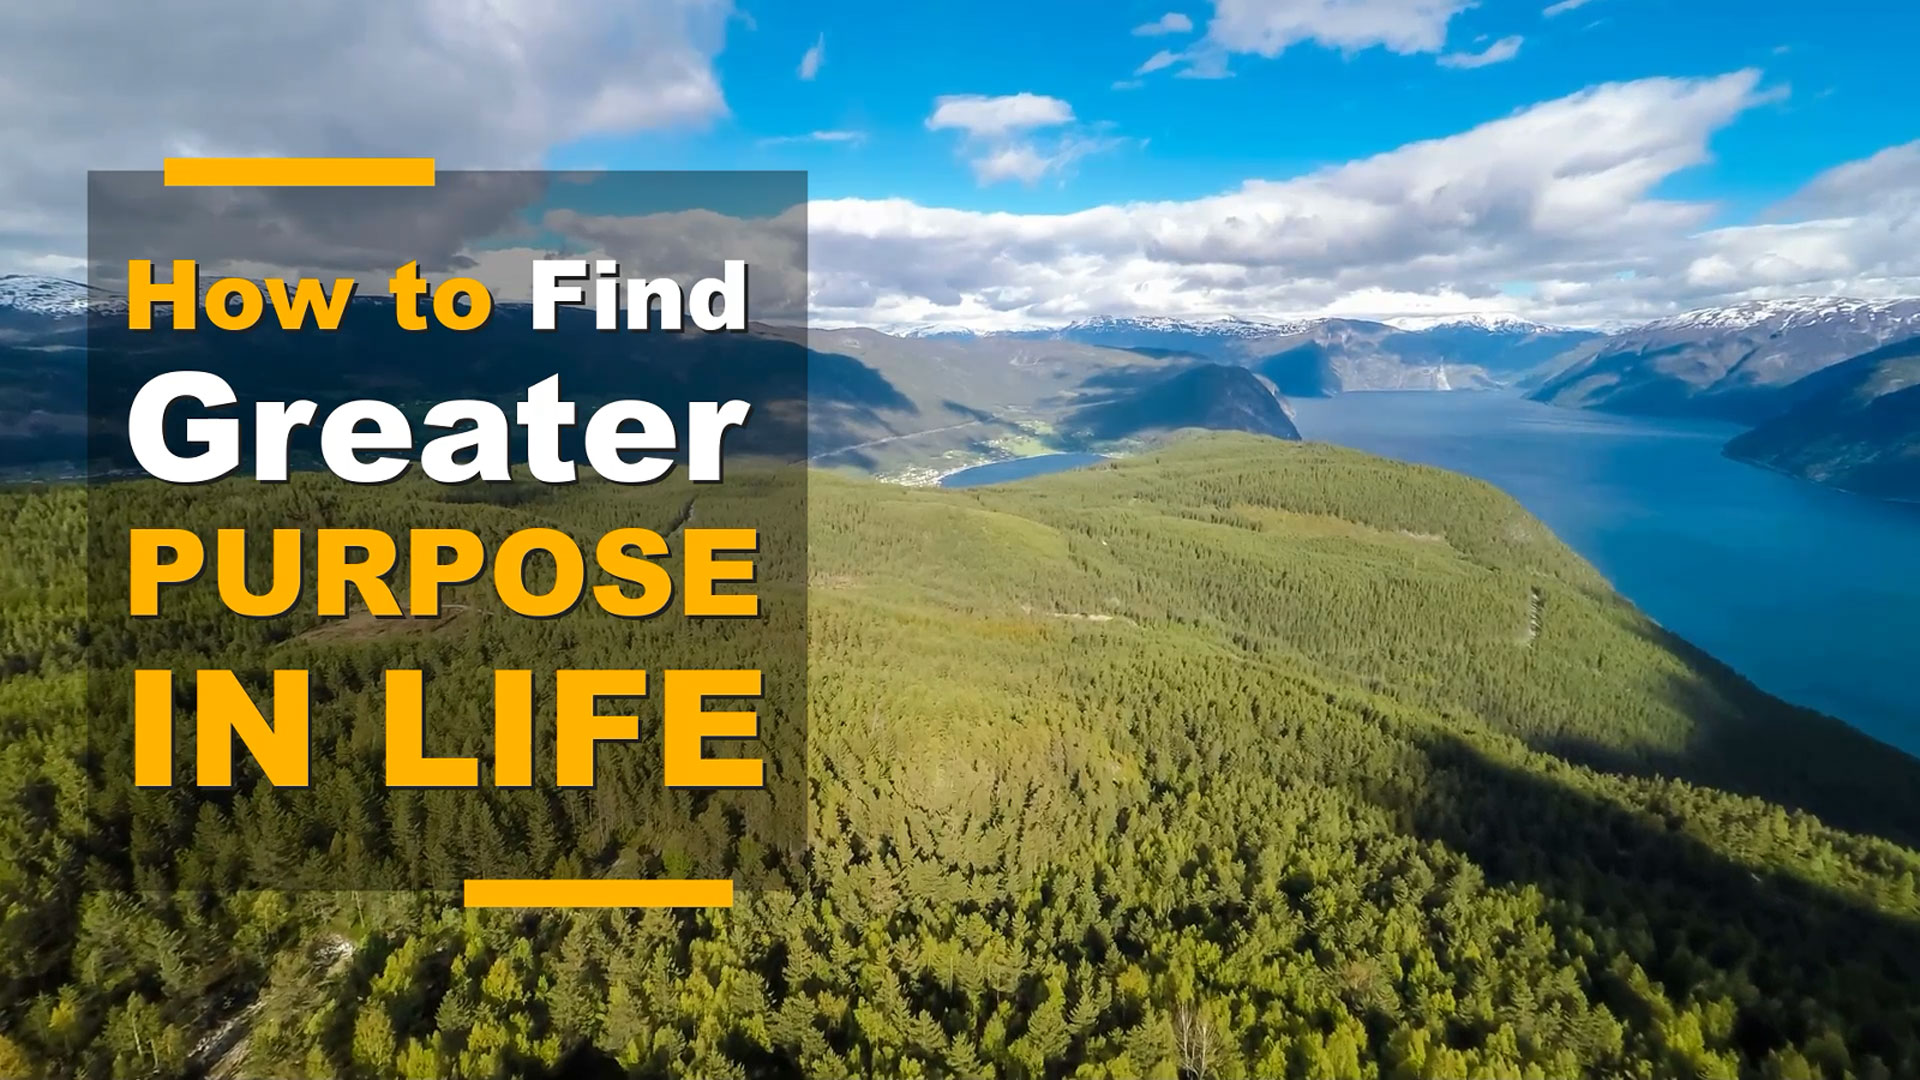 How to Find Greater Purpose in Life